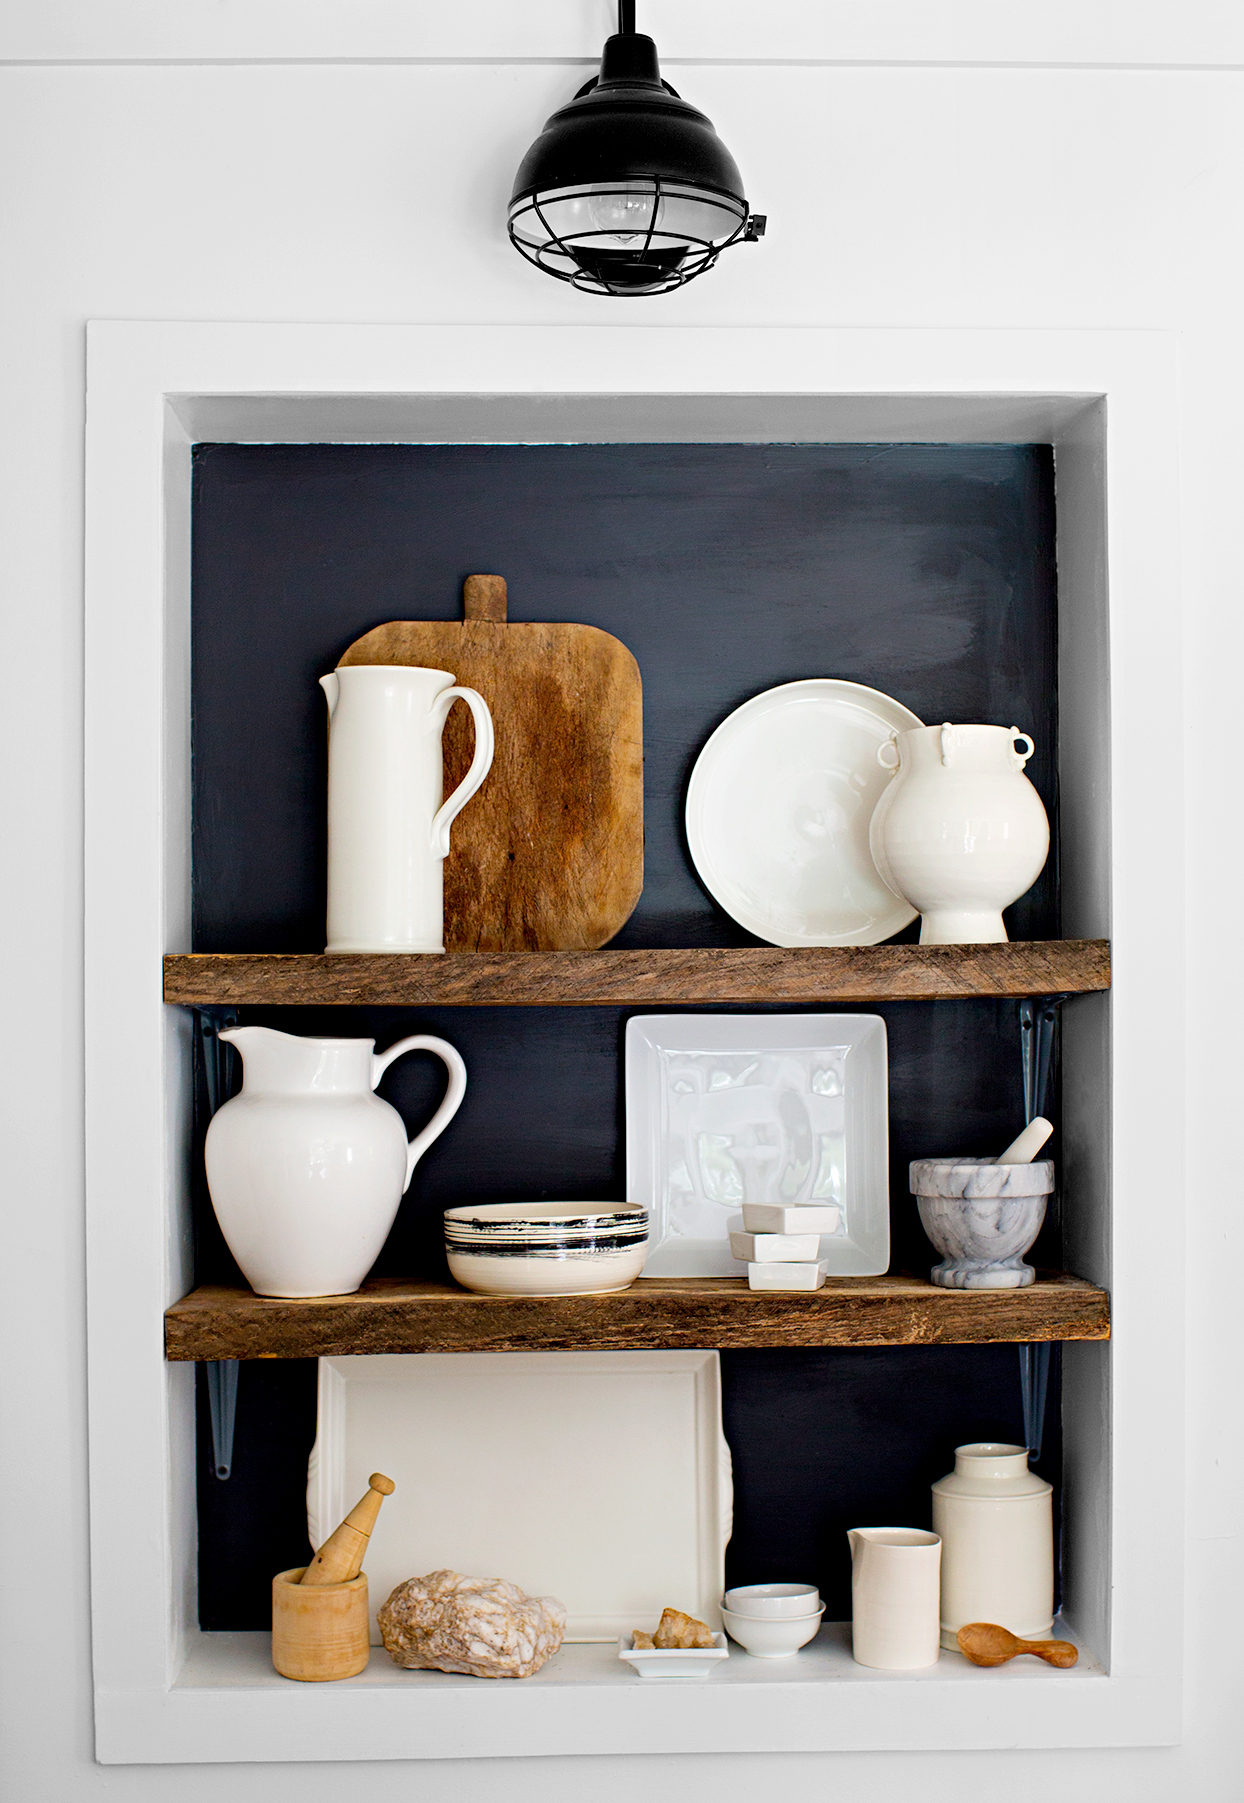 Shelf white and wood dishes